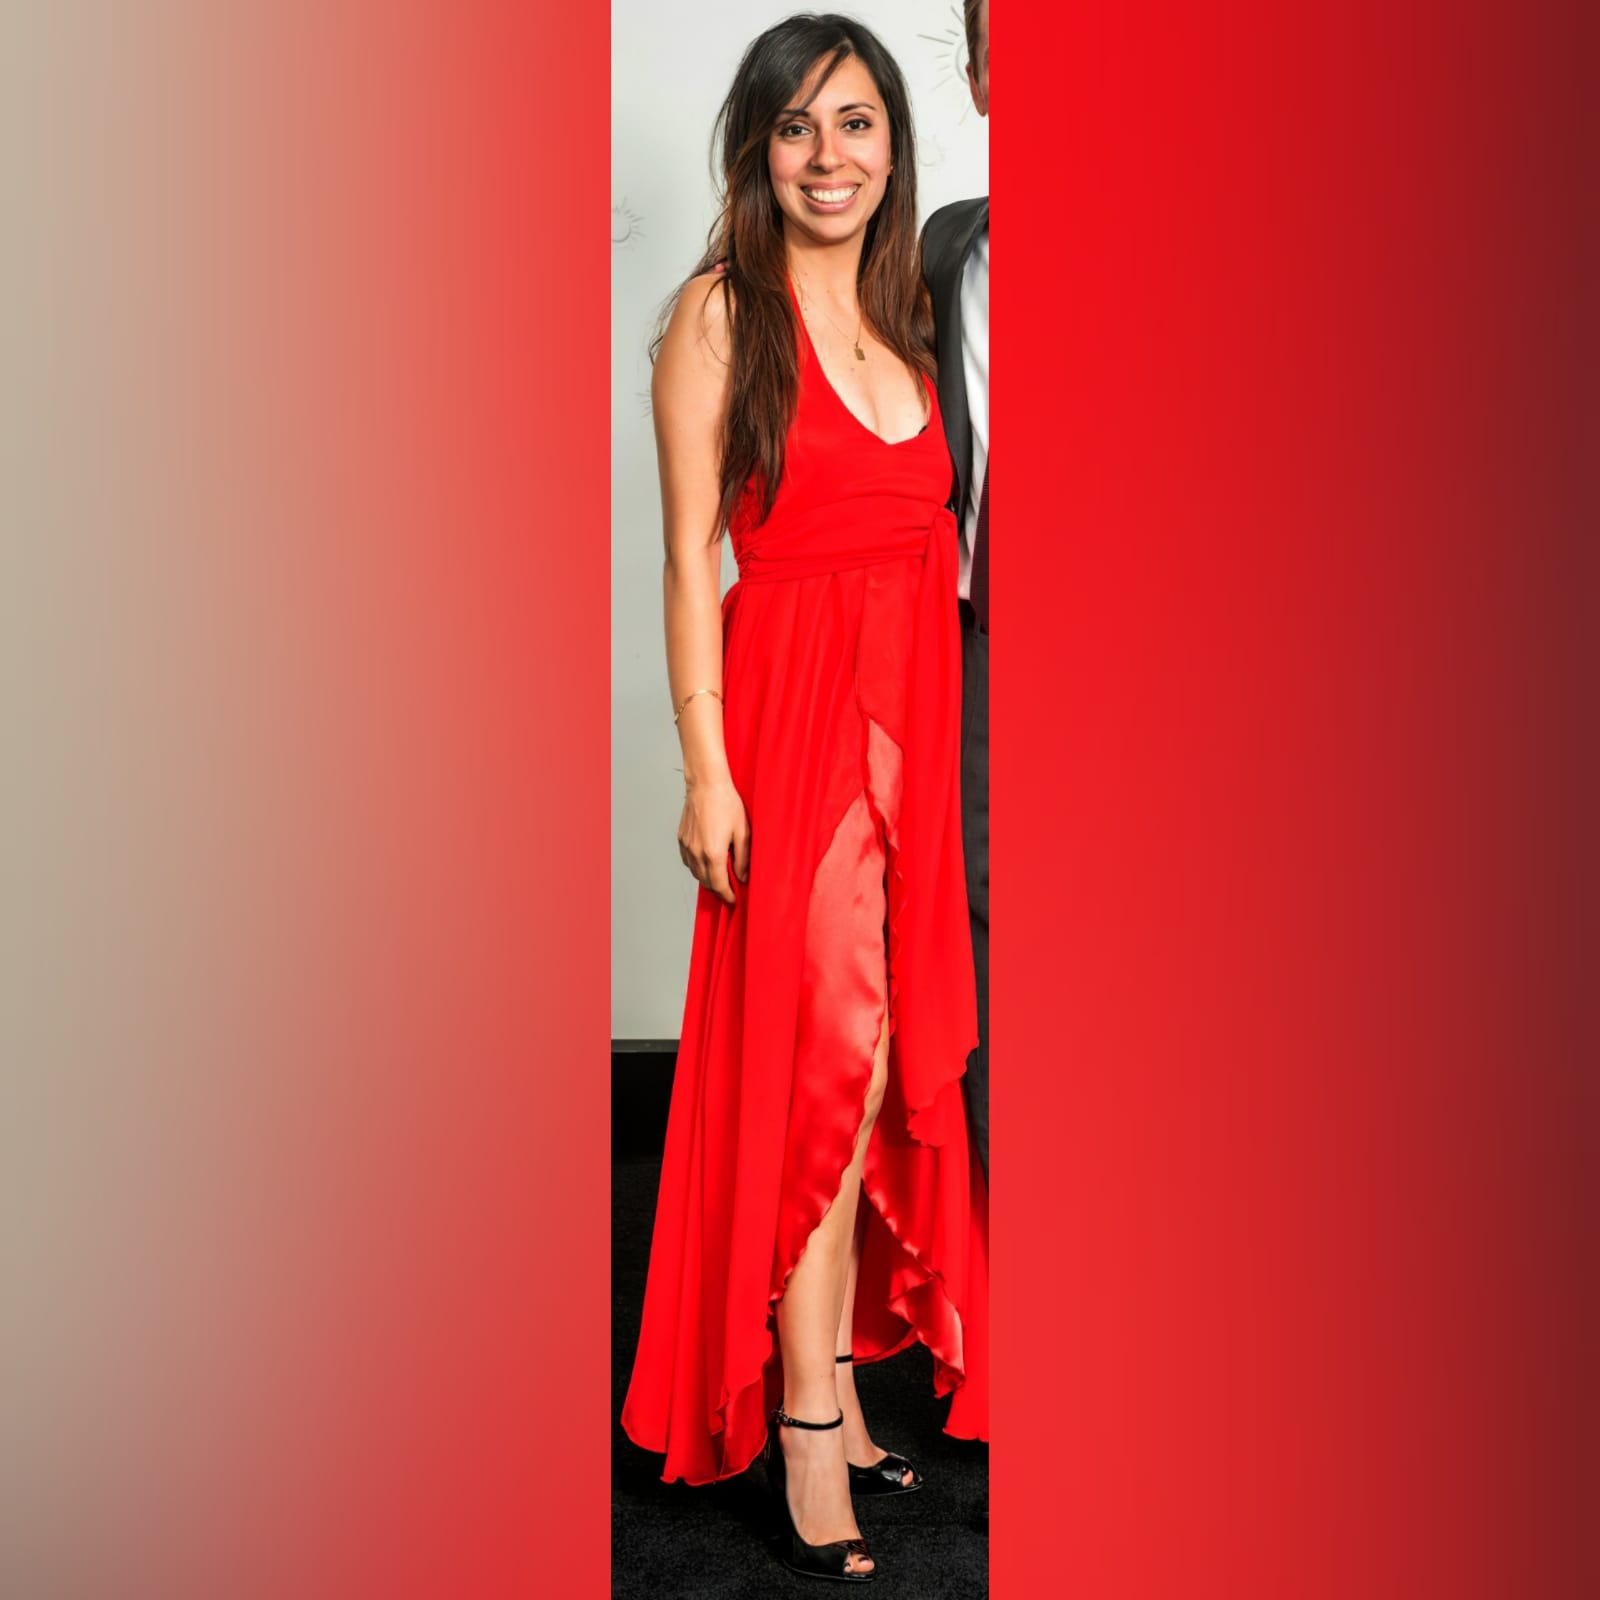 Bright red halter neck evening dress 2 bright red halter neck evening dress with a satin and chiffon crossed layer creating a double slit. A ruched belt